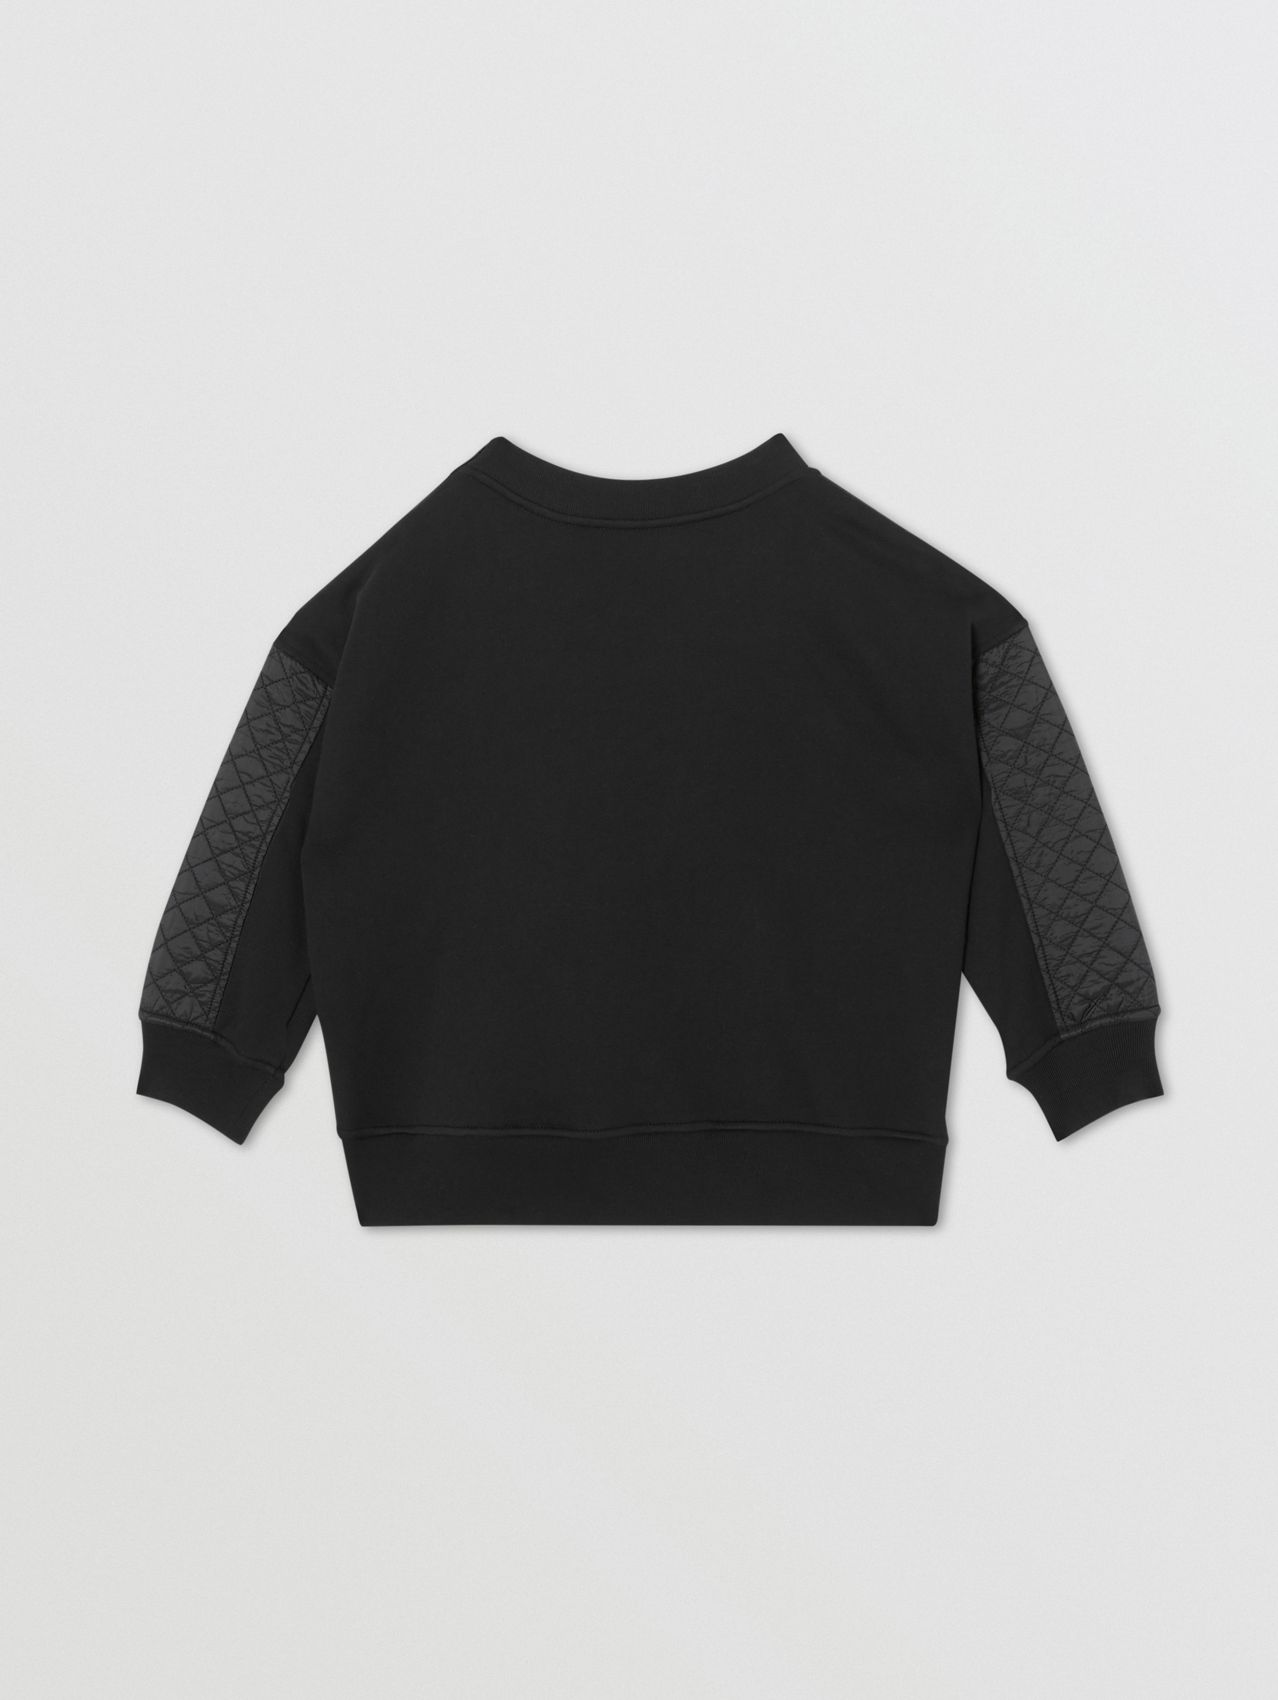 Monogram Quilted Panel Cotton Sweatshirt in Black